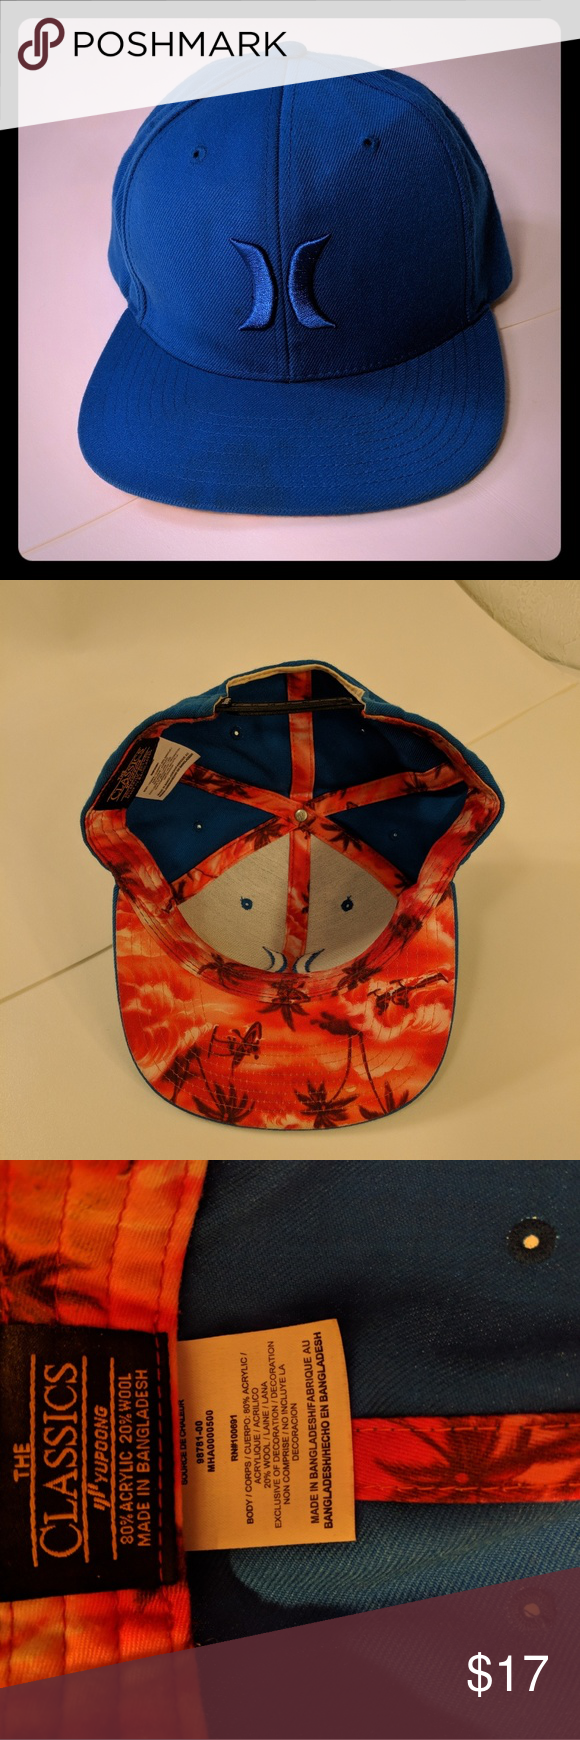 6d8e7767c4a9b Hurley The Classics Yupoong Snapback w  Palm Trees Blue cap with reddish  orange Palm Tree and Surfer Graphic inside. In Very Good Pre-owned  Condition.